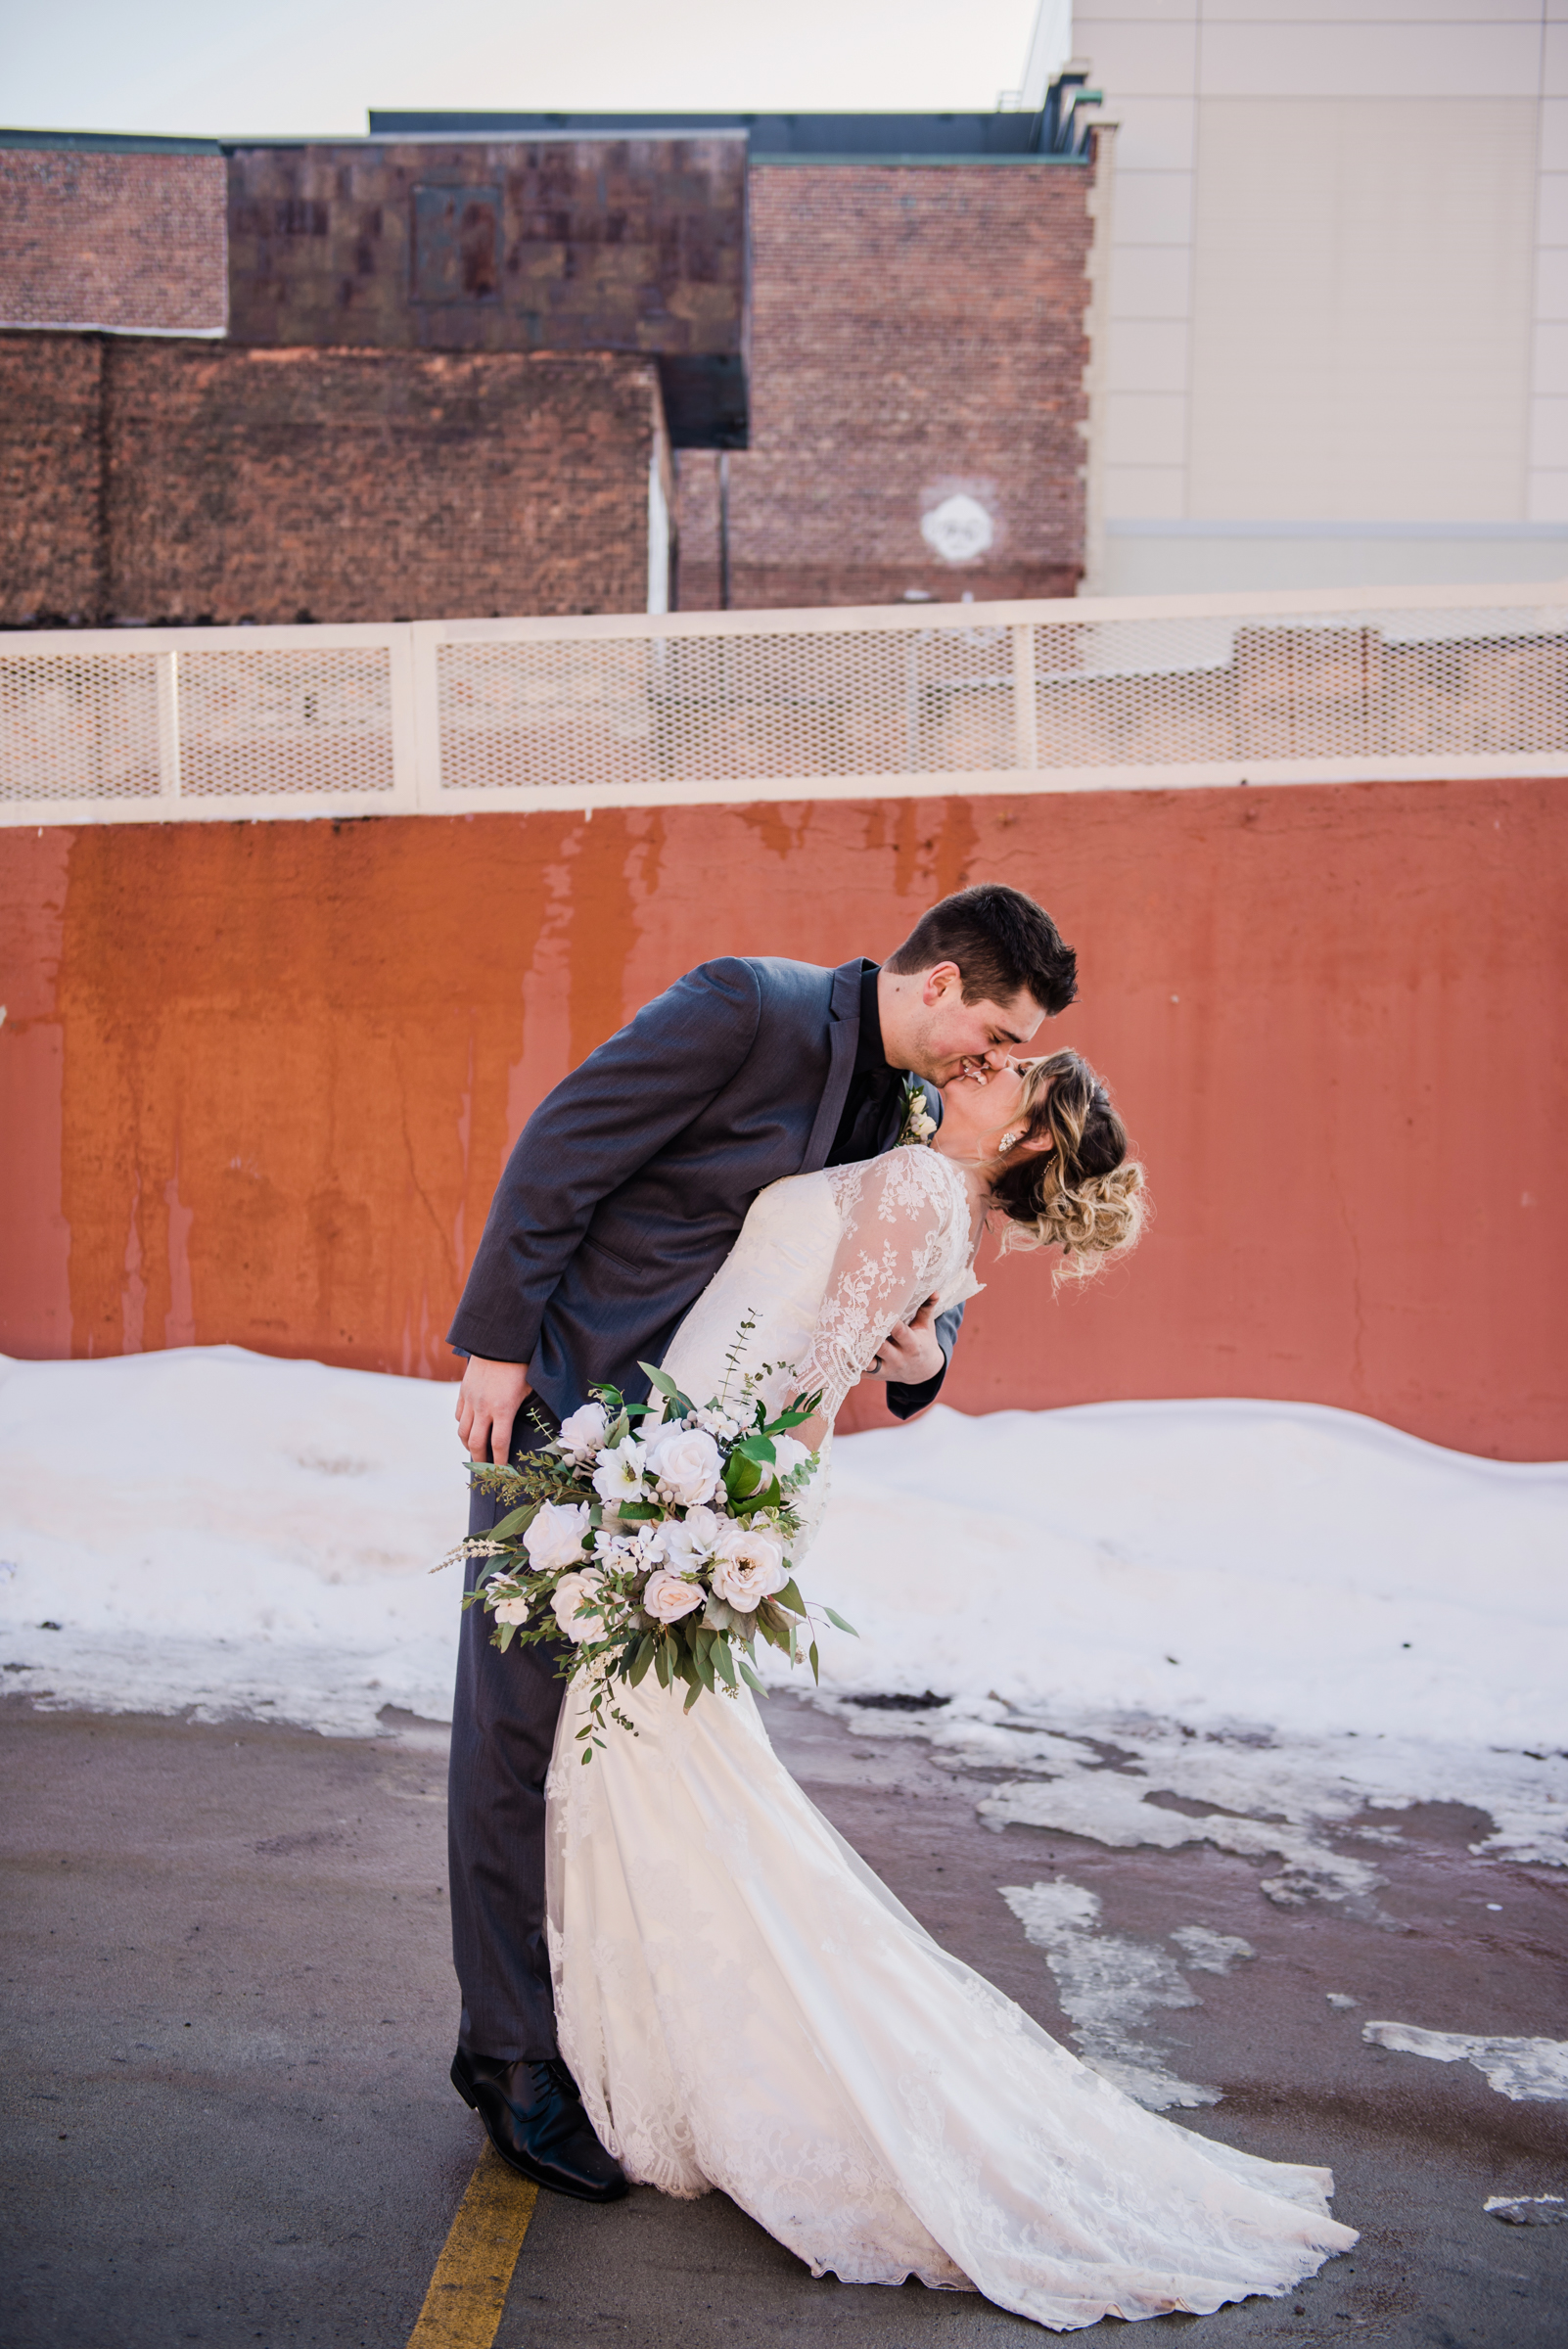 JILL_STUDIO_Wedding_JILL_STUDIO_Rochester_NY_Photographer_1-DSC_5600.jpg